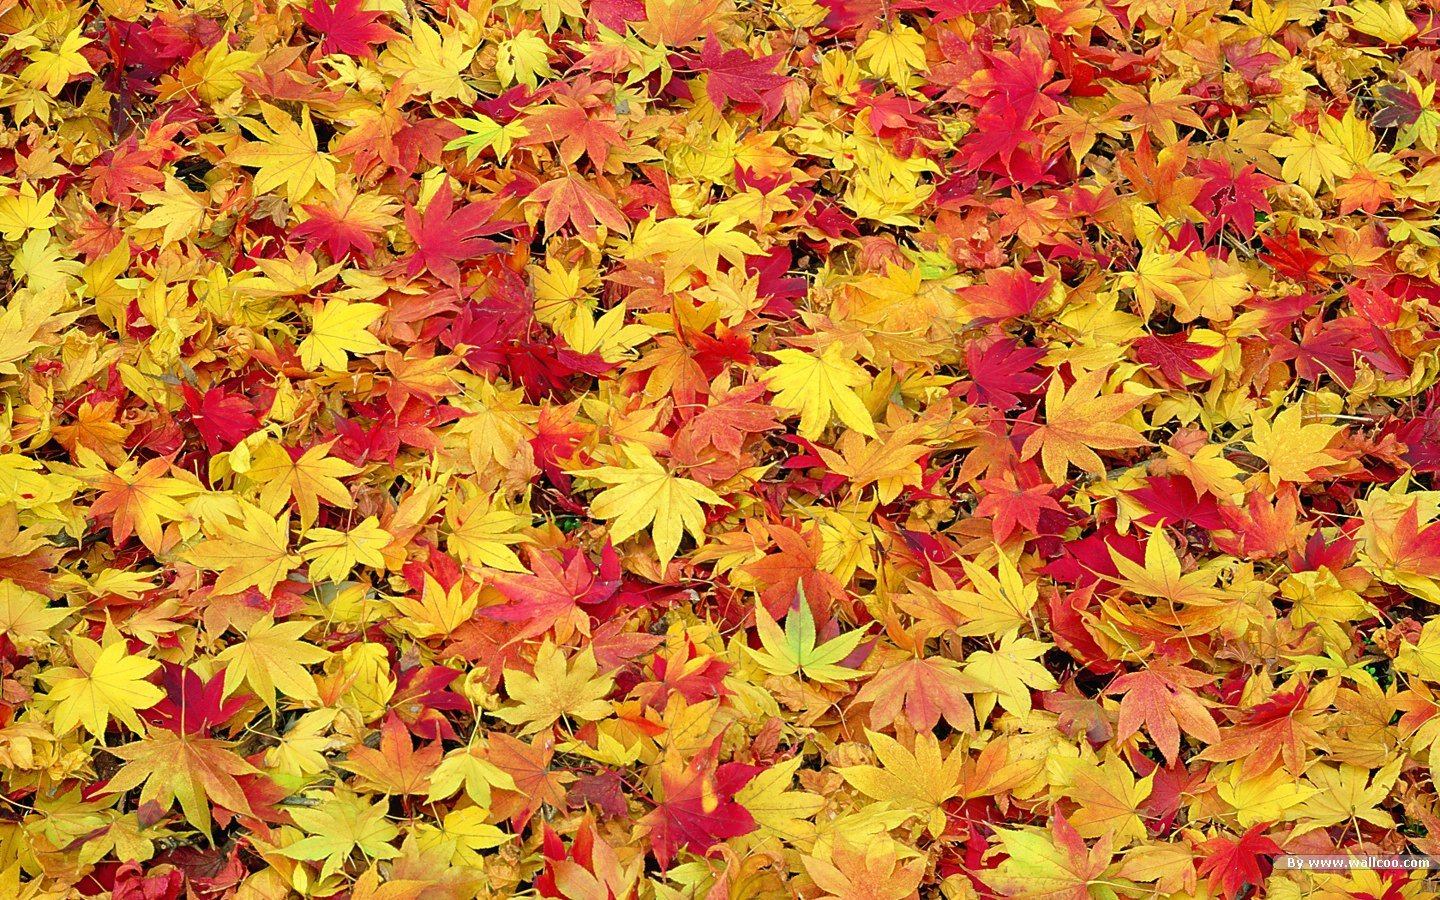 Free Desktop Wallpaper Autumn Leaves: Free Desktop Wallpaper Autumn Leaves